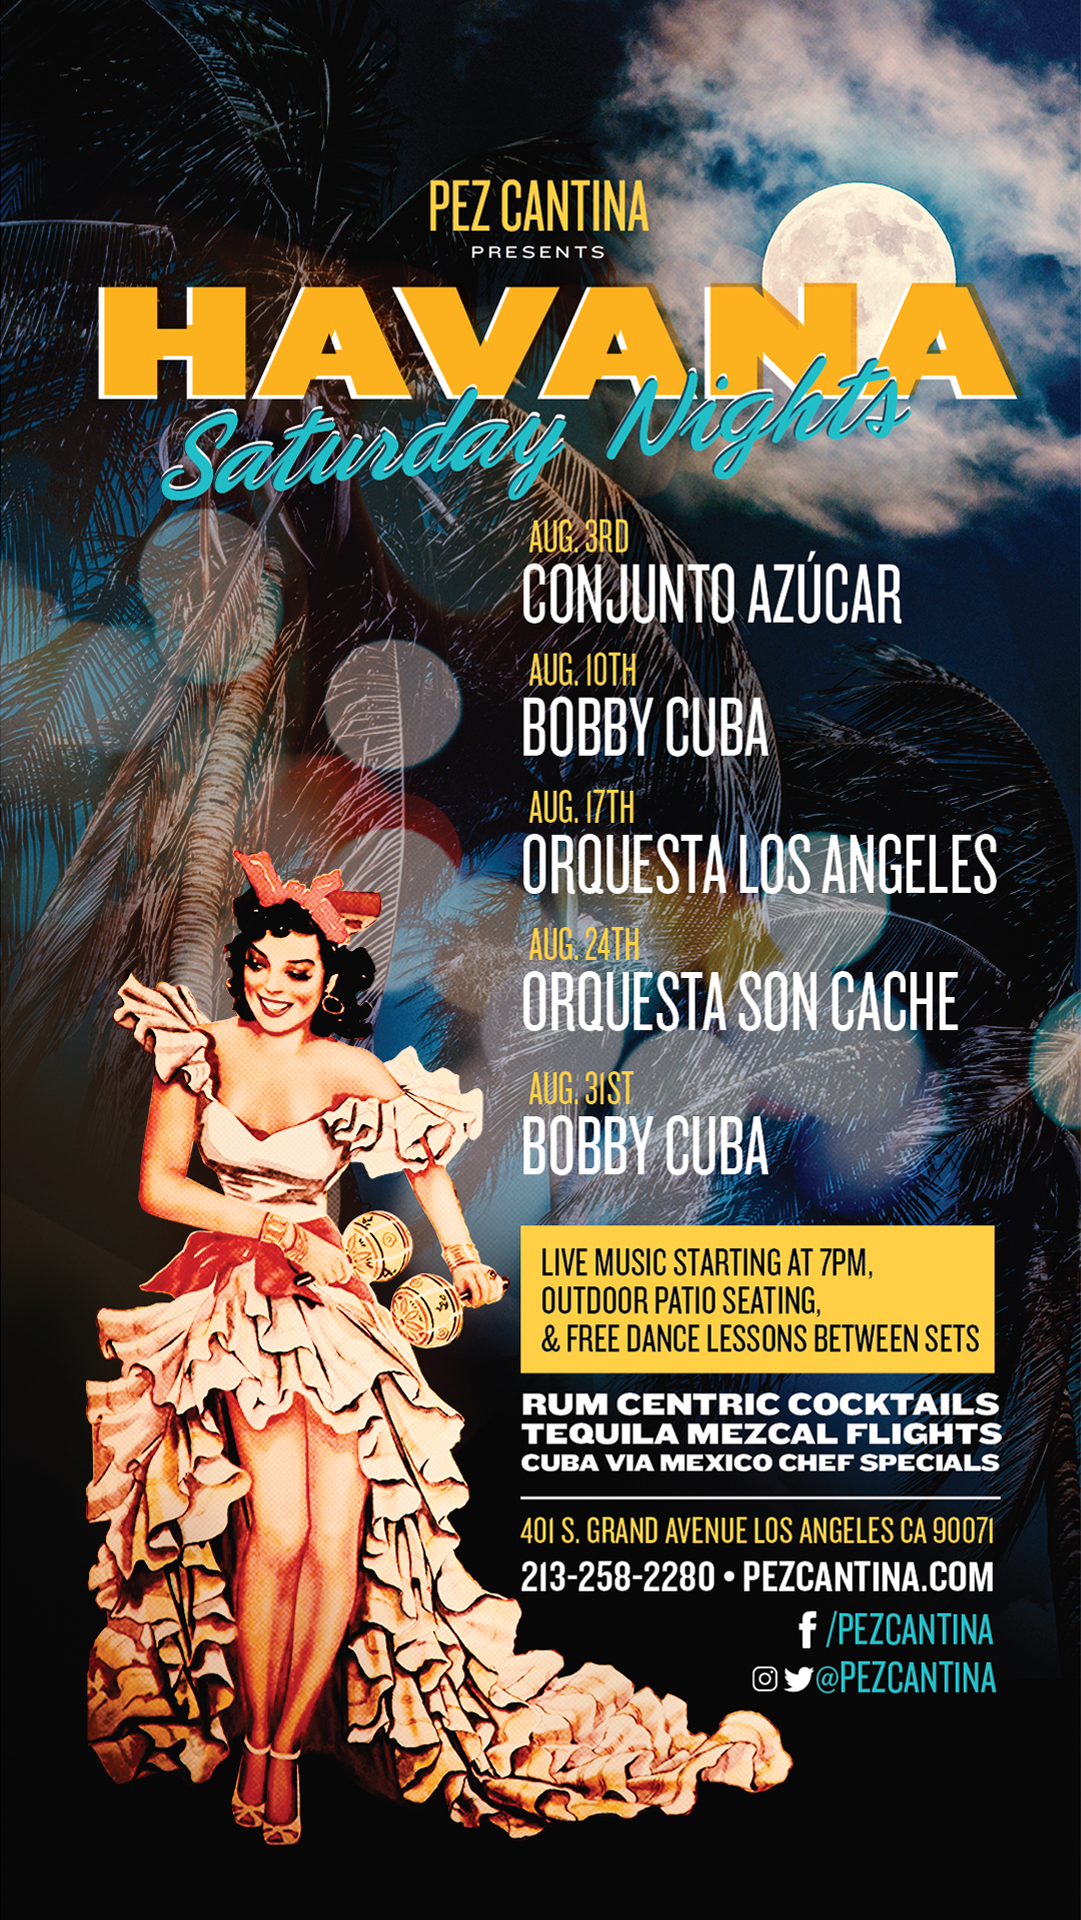 Havana_Nights v2 (Flyer) v1_72.png